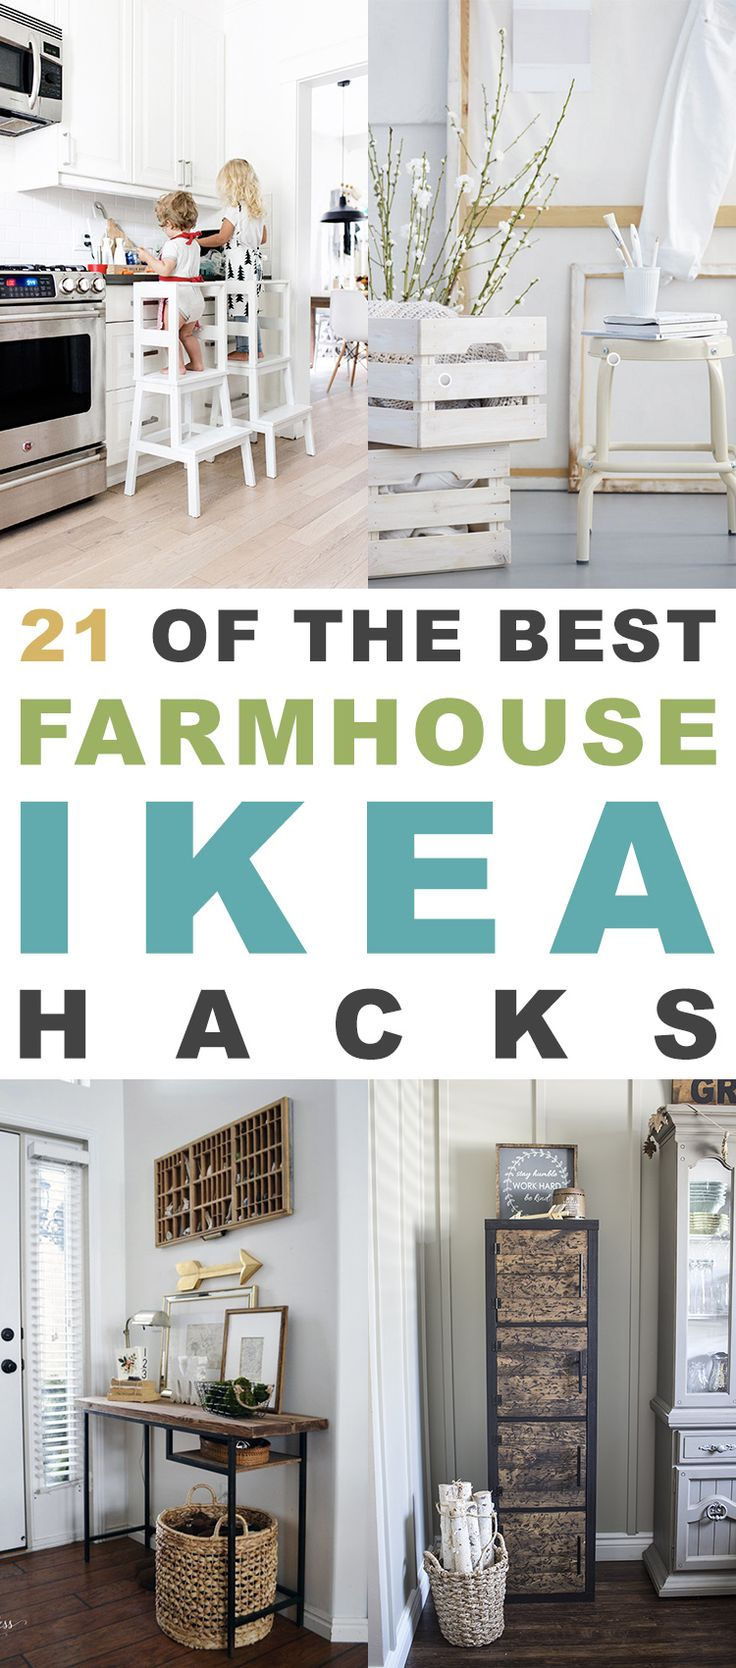 I have wanted to put together a collection of what I think are 21 of The Best Farmhouse IKEA Hacks out there! I have featured them in different posts but never put them all together (believe me there could have been many more!) So here is a gathering of Farmhouse IKEA Hacks that I know …